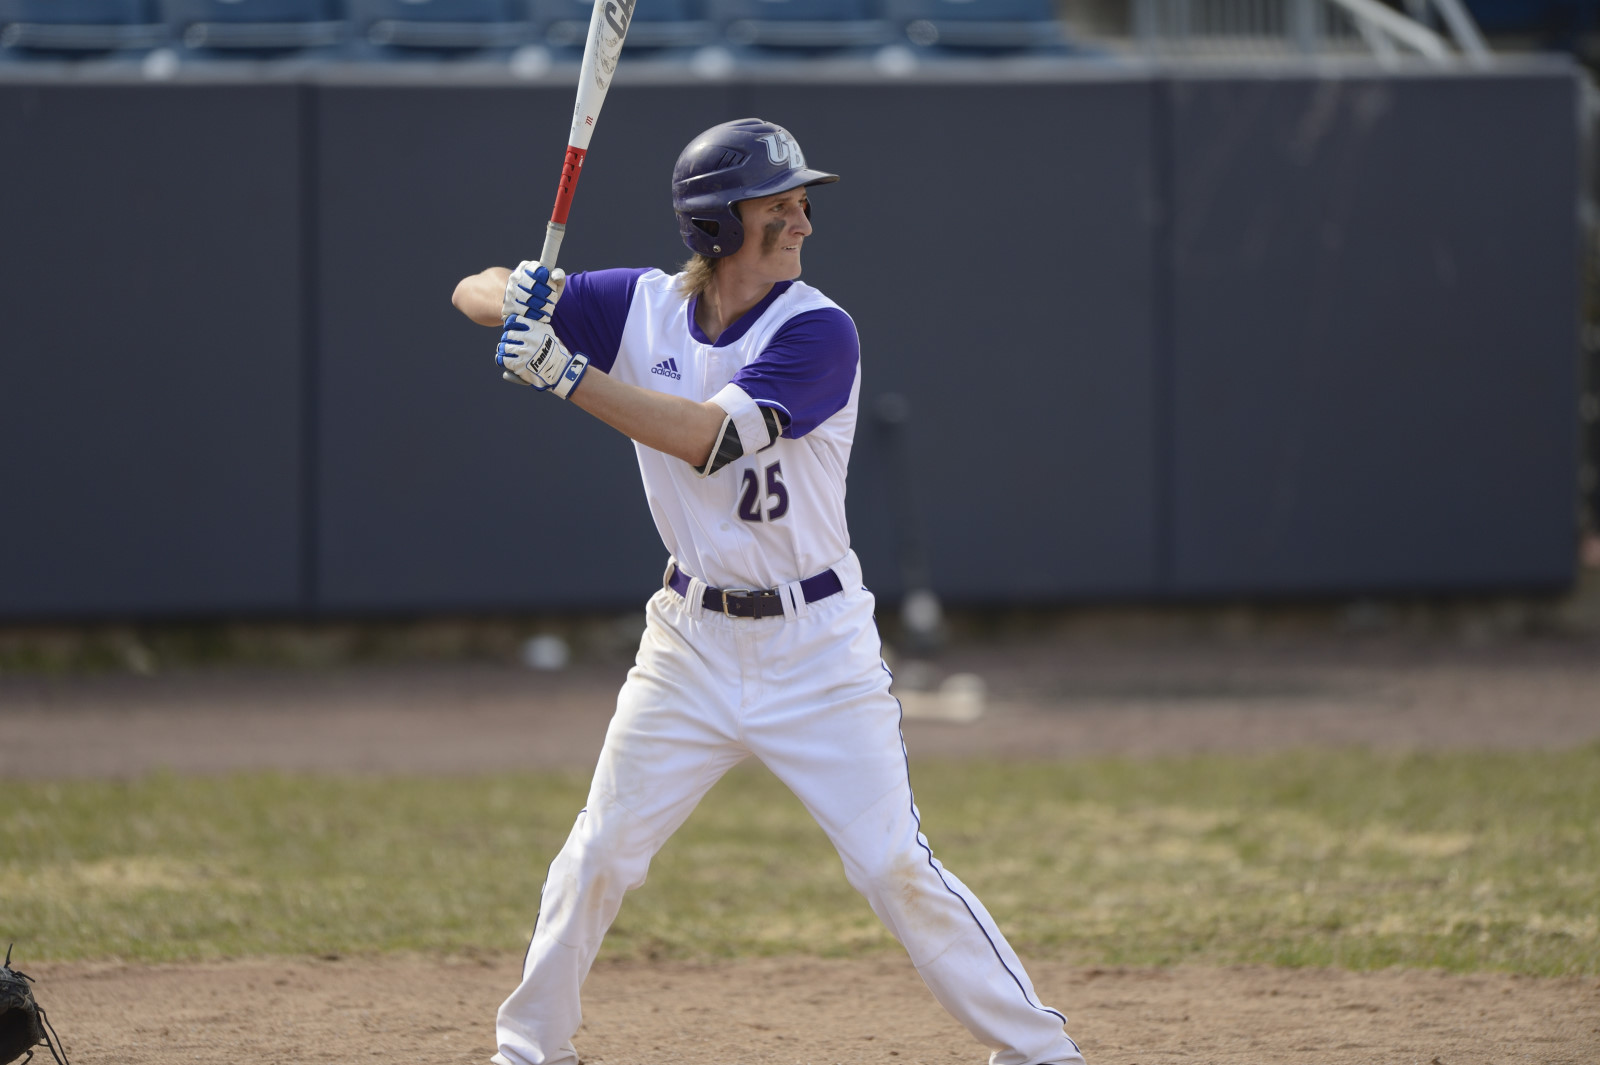 Baseball Falls To Adelphi On Tuesday Afternoon At Harbor Yard